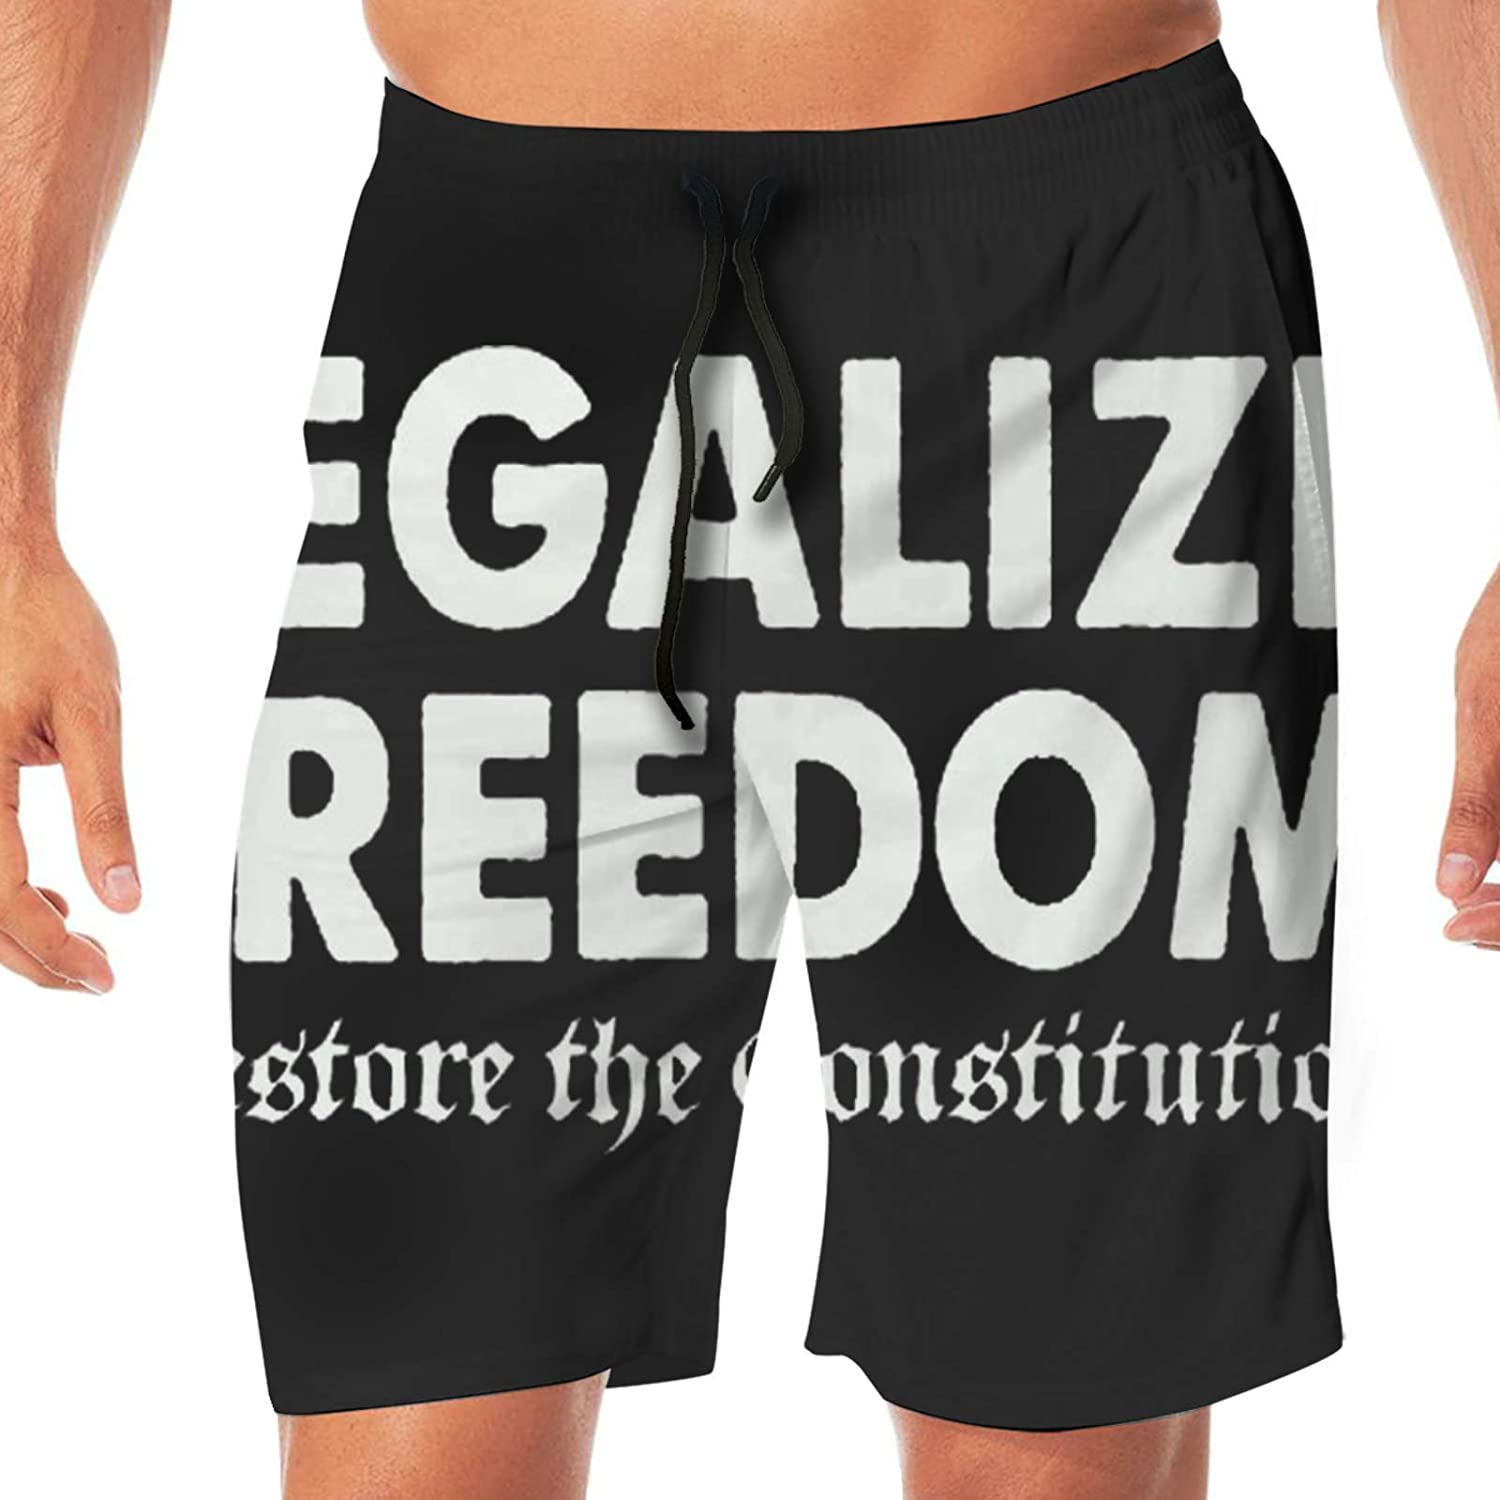 RUIHGK Legalize Freedom, Restore The Constitution Mens Summer Swim Trunks Quick Dry Funny Beach Board Shorts Casual Pants Printing White